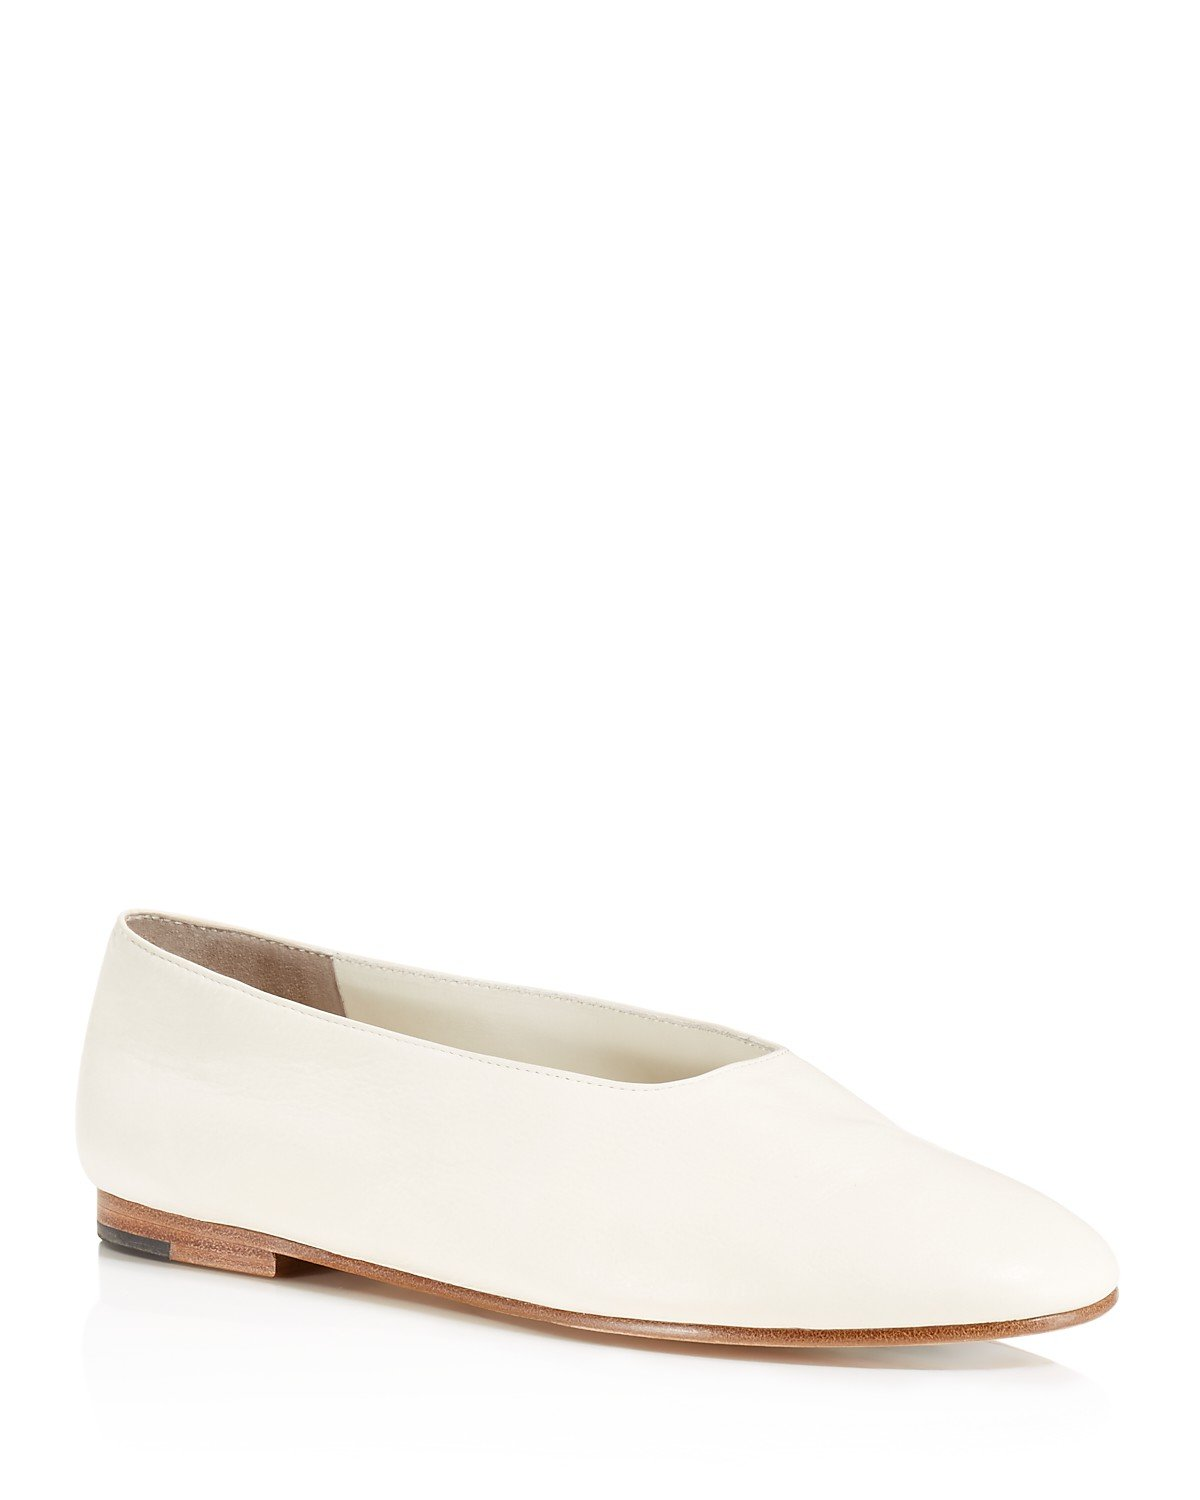 Vince Maxwell Leather Flats